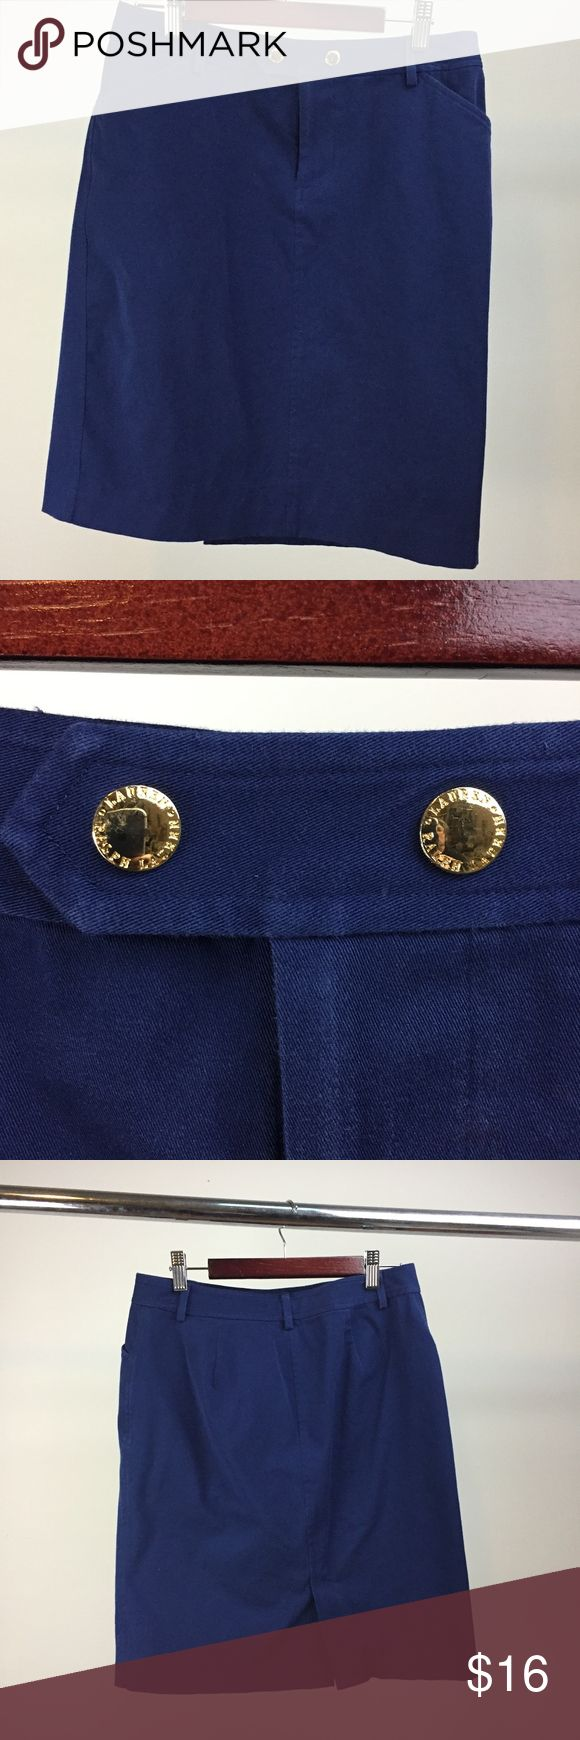 """Lauren RL Stretch Twill Skirt Bright navy, cotton twill with plenty of lycra for stretch and gold-tone buttons for a preppy/nautical vibe.  This skirt flat-measures 29"""" in waist, 38"""" in hips and 20"""" in length.  It has a back vent for 5.5."""" Lauren Ralph Lauren Skirts Midi"""